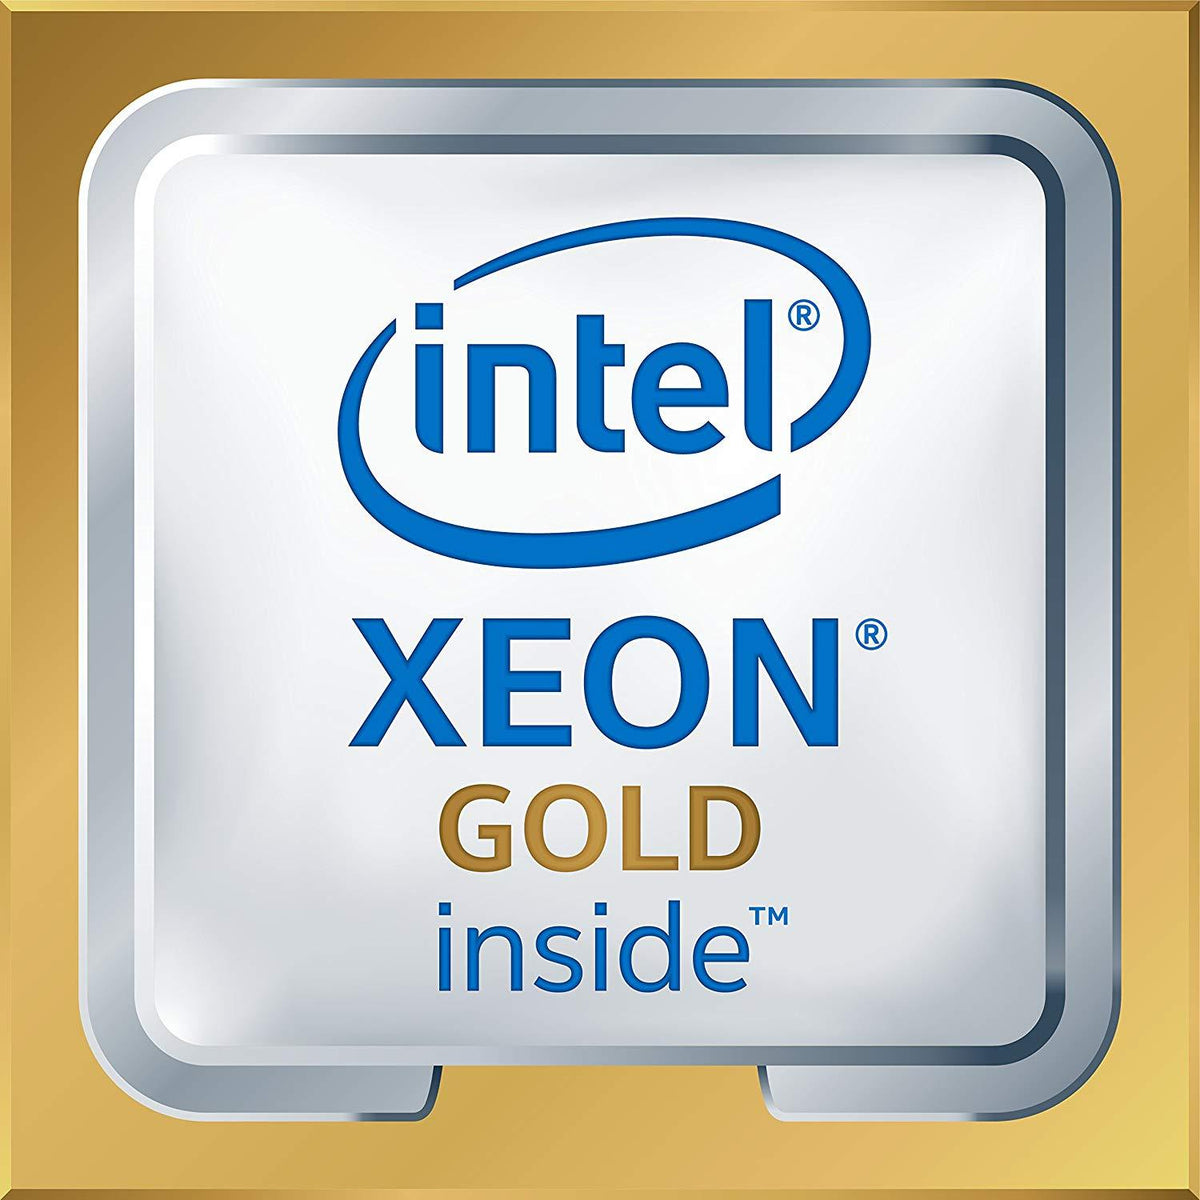 875948-B21 - HPE BL460c Gen10 Intel Xeon-Gold 6142 (2.6GHz/16-core/145W) Processor